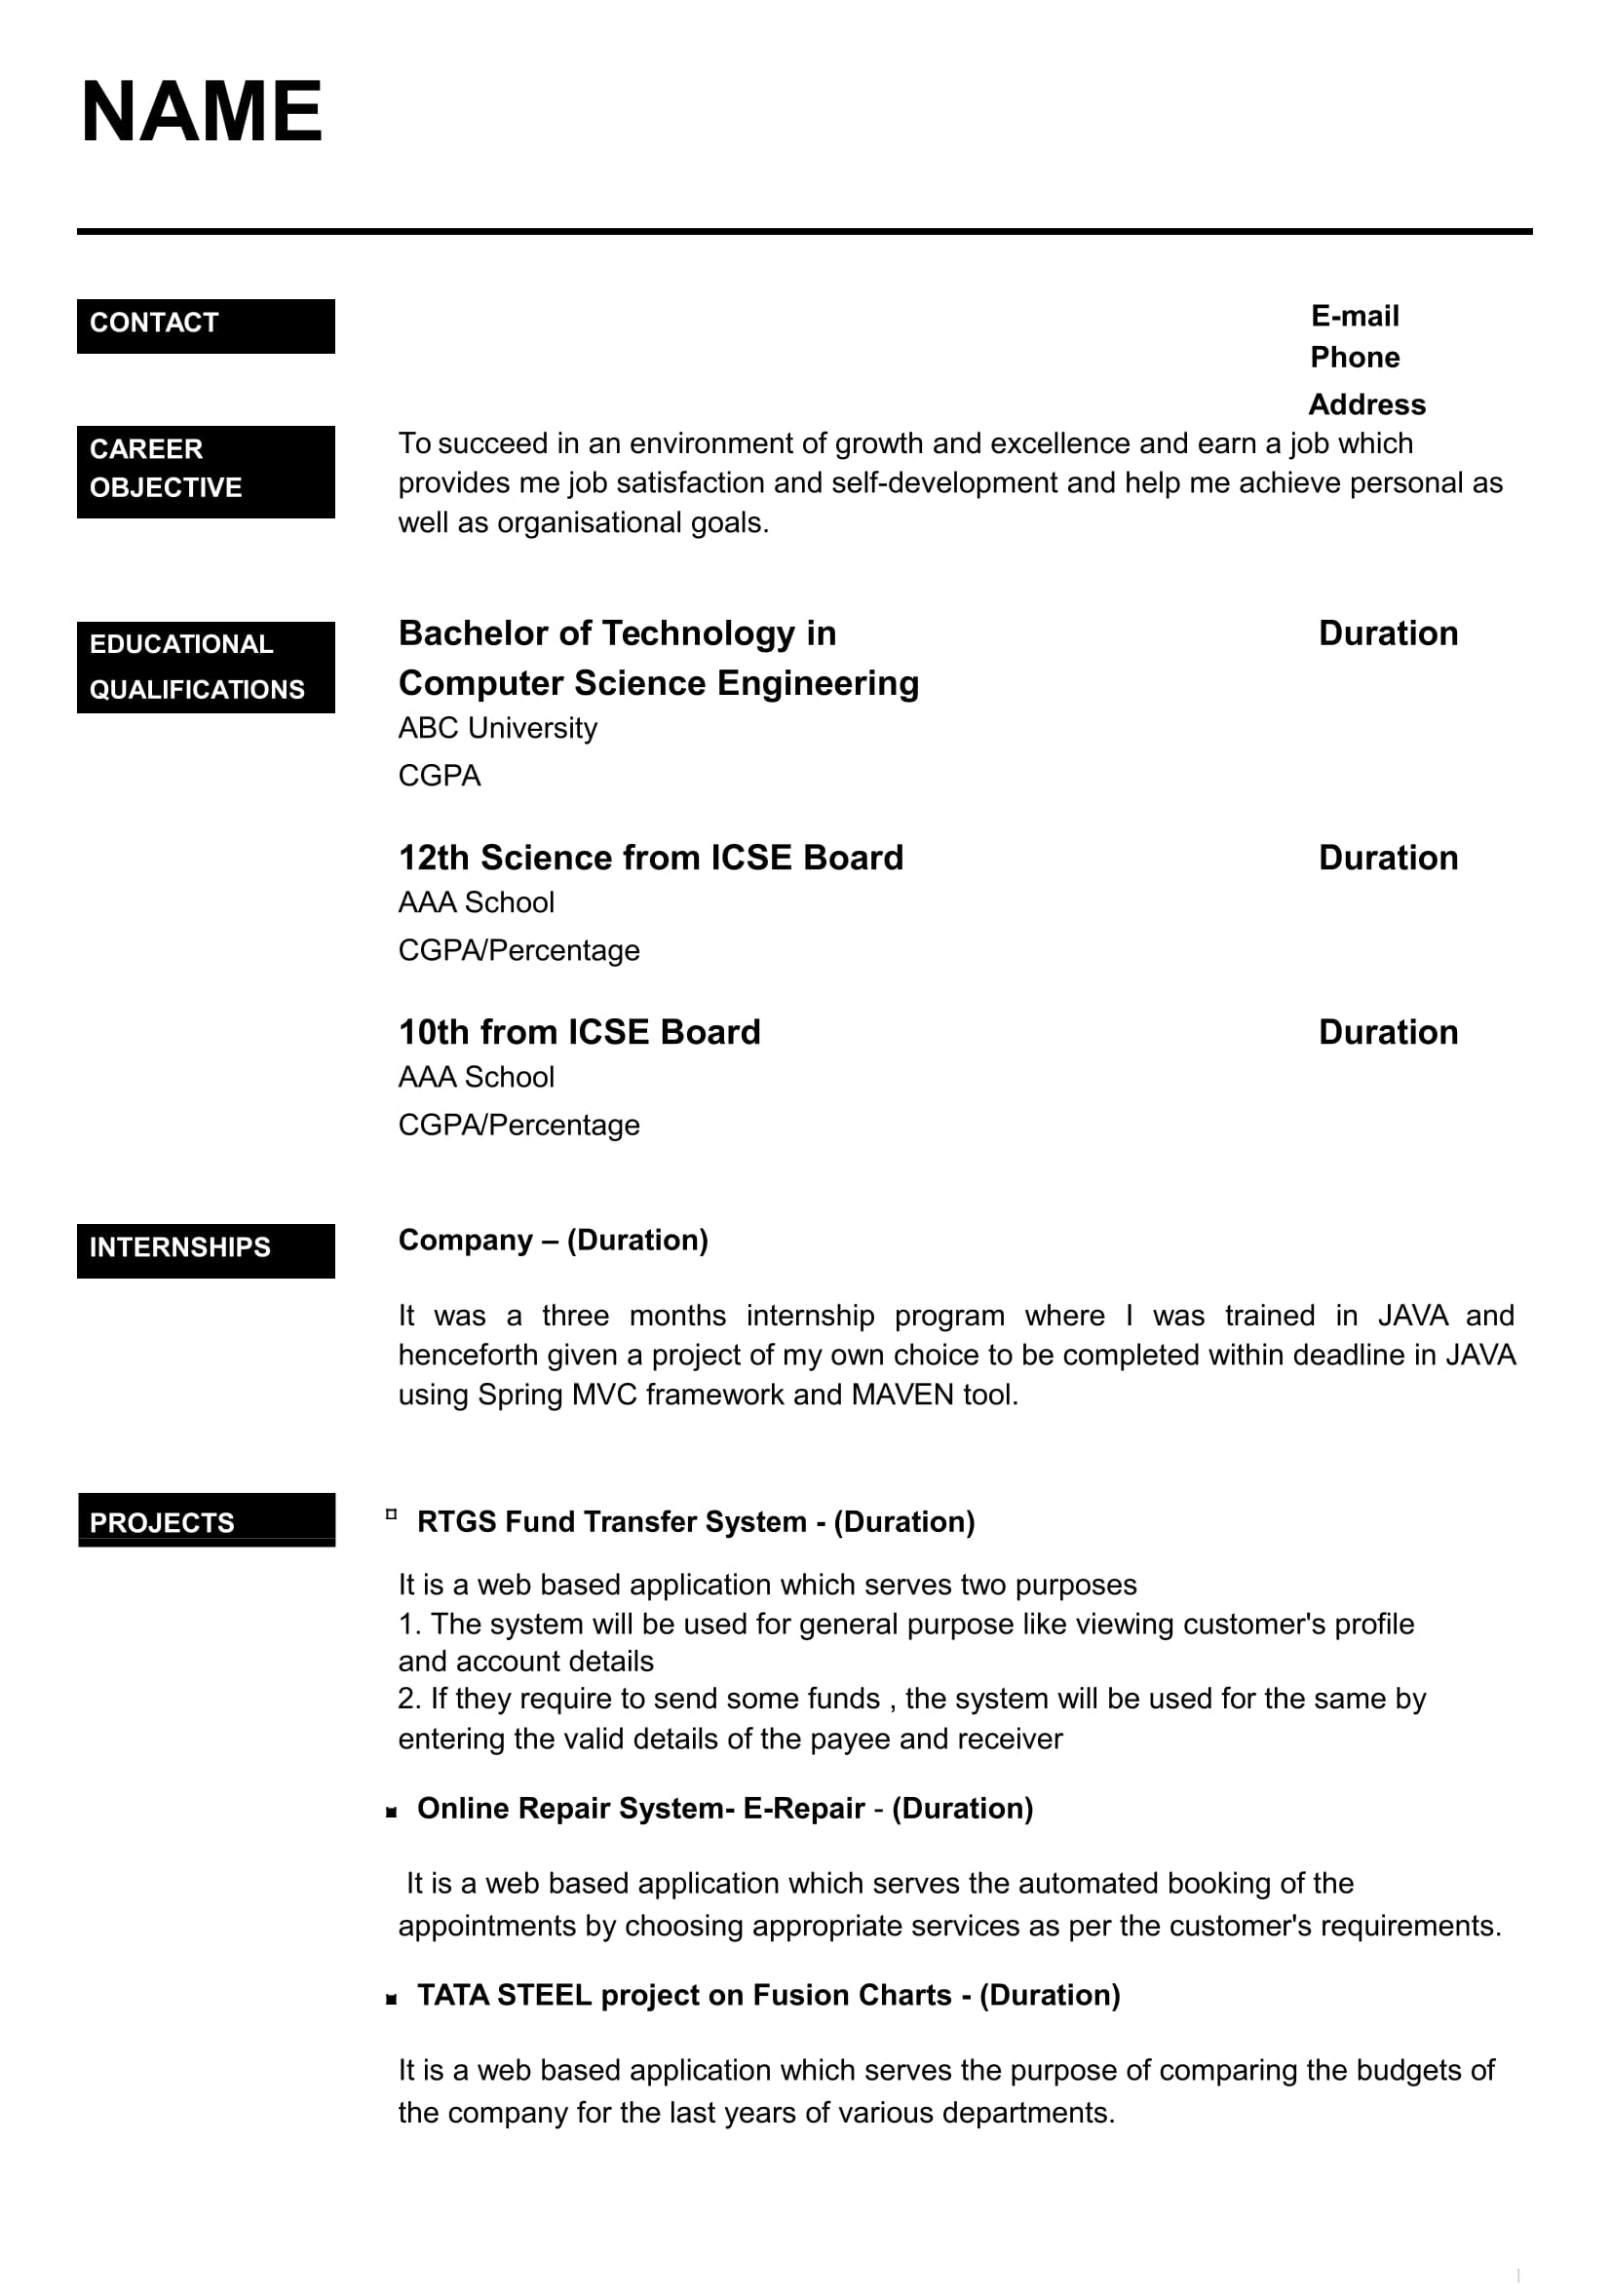 32  resume templates for freshers